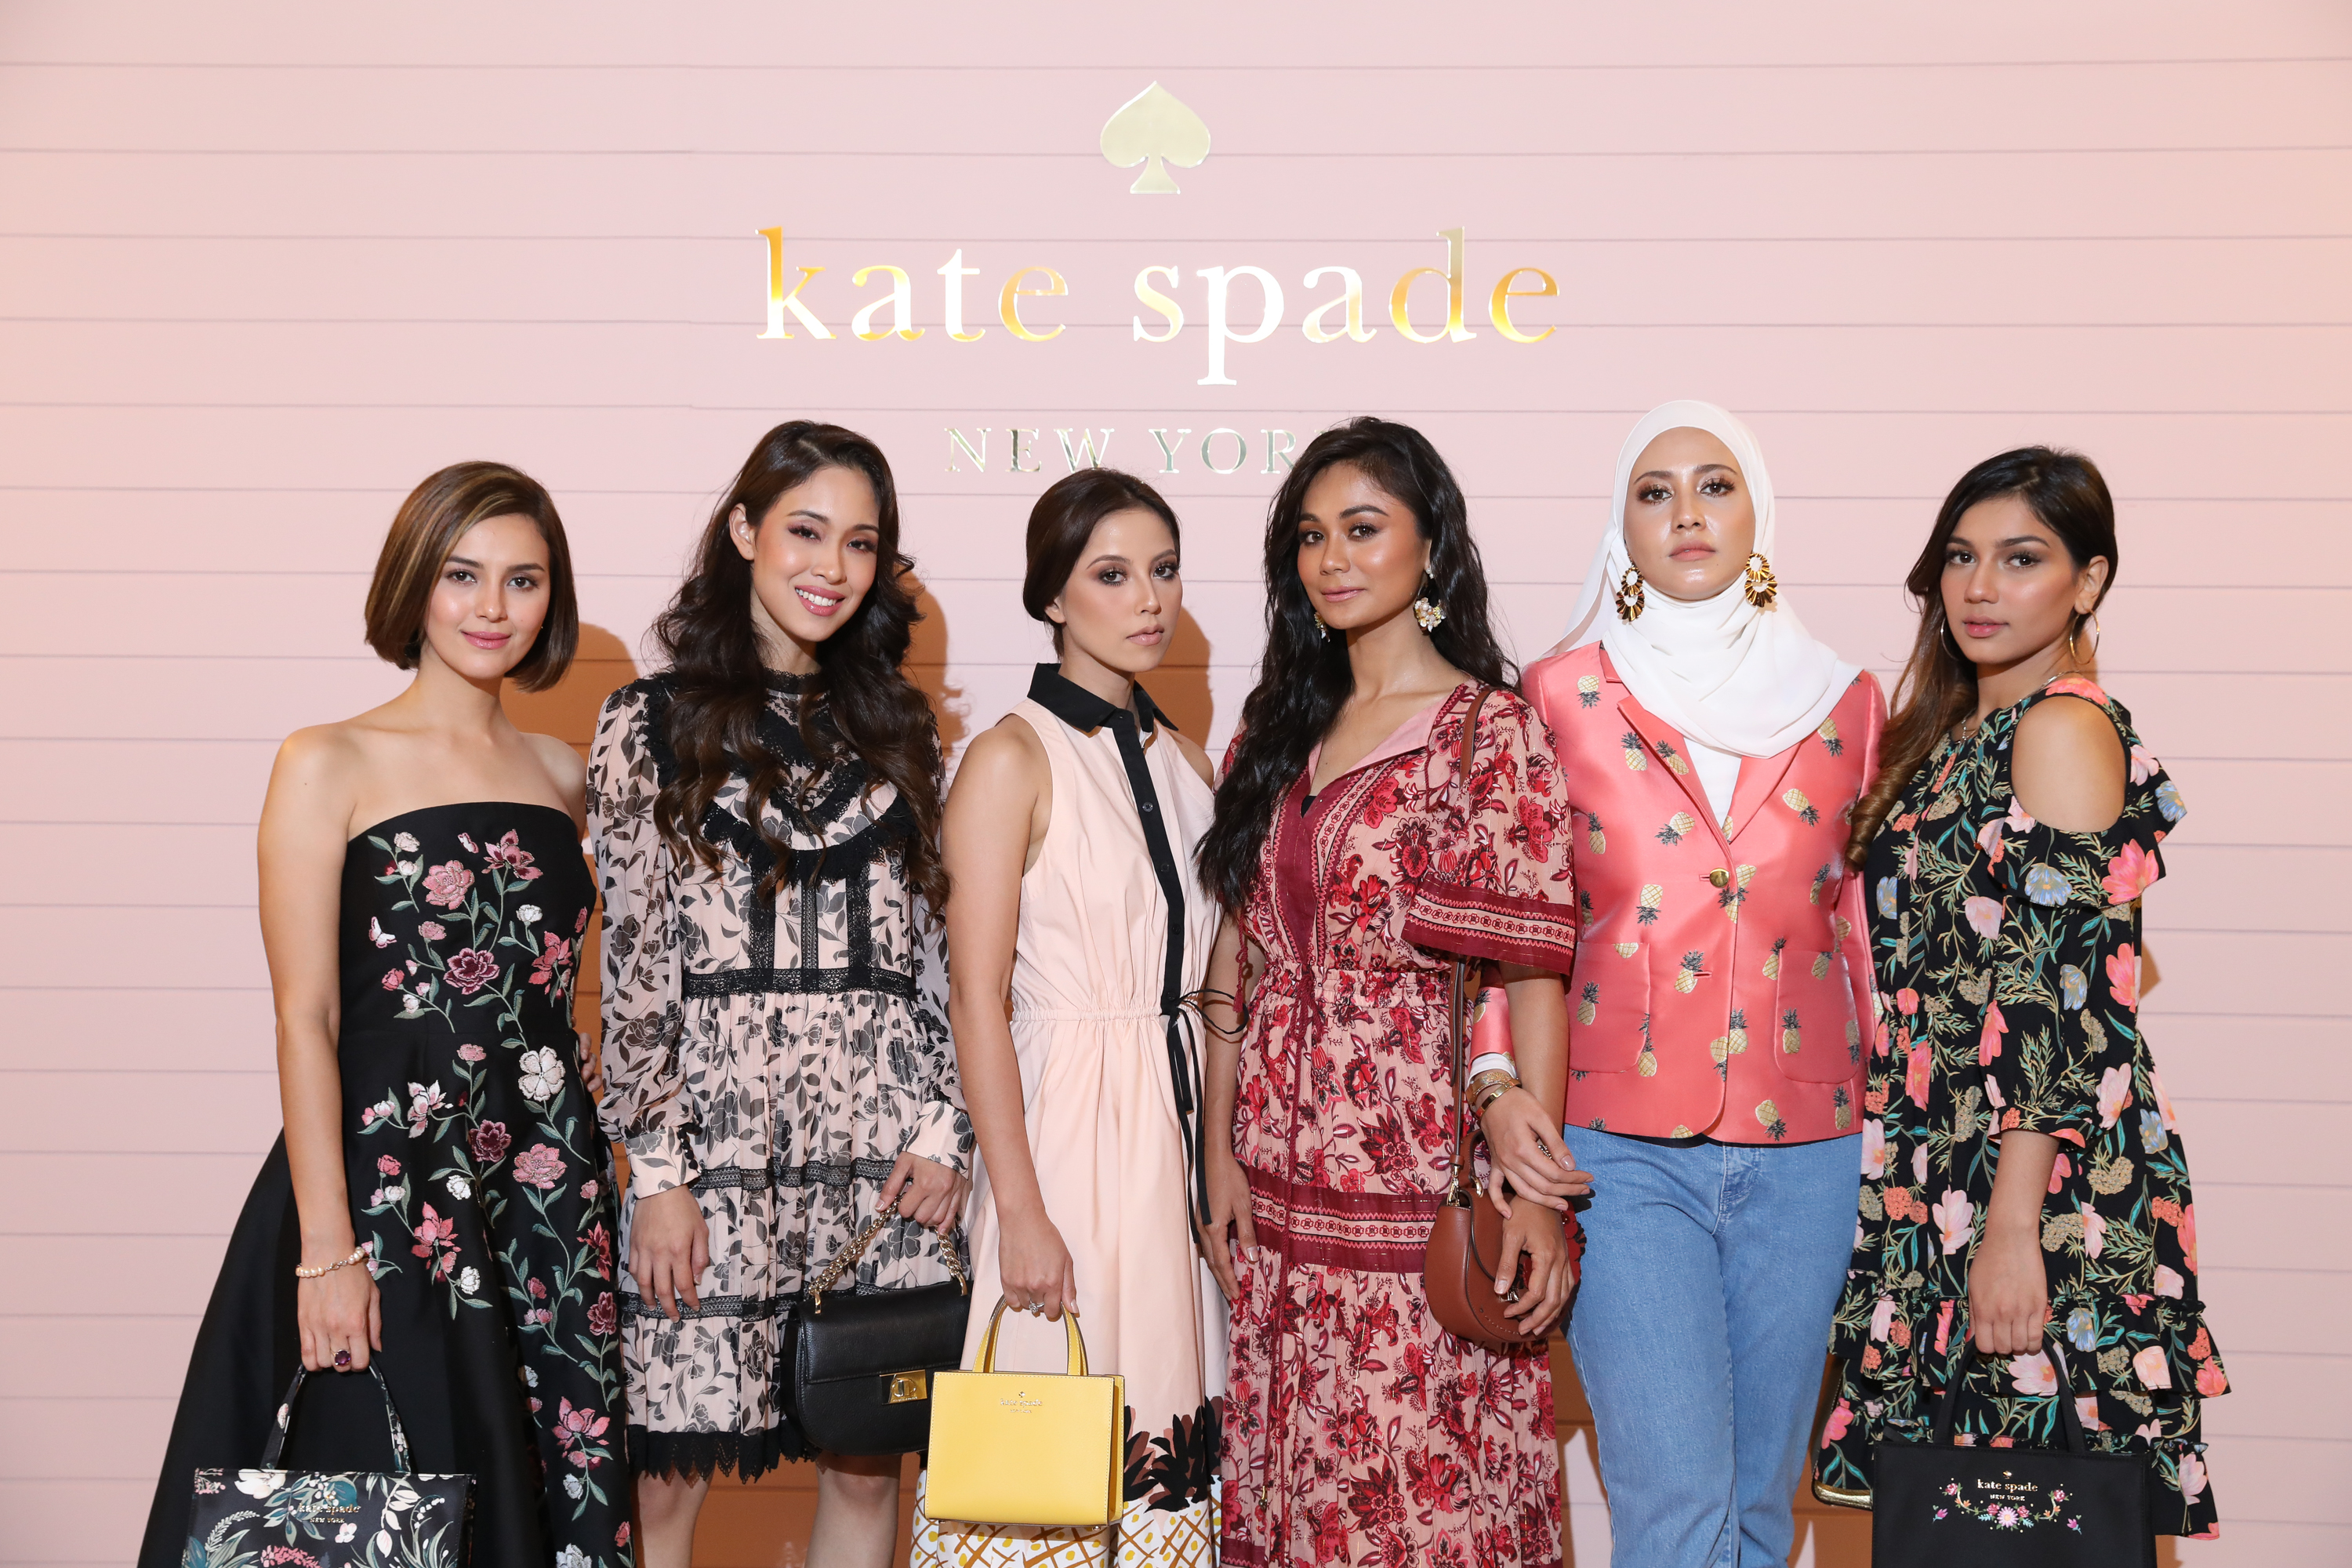 All The Local Celebs Spotted At The Kate Spade Fall 2018 Preview